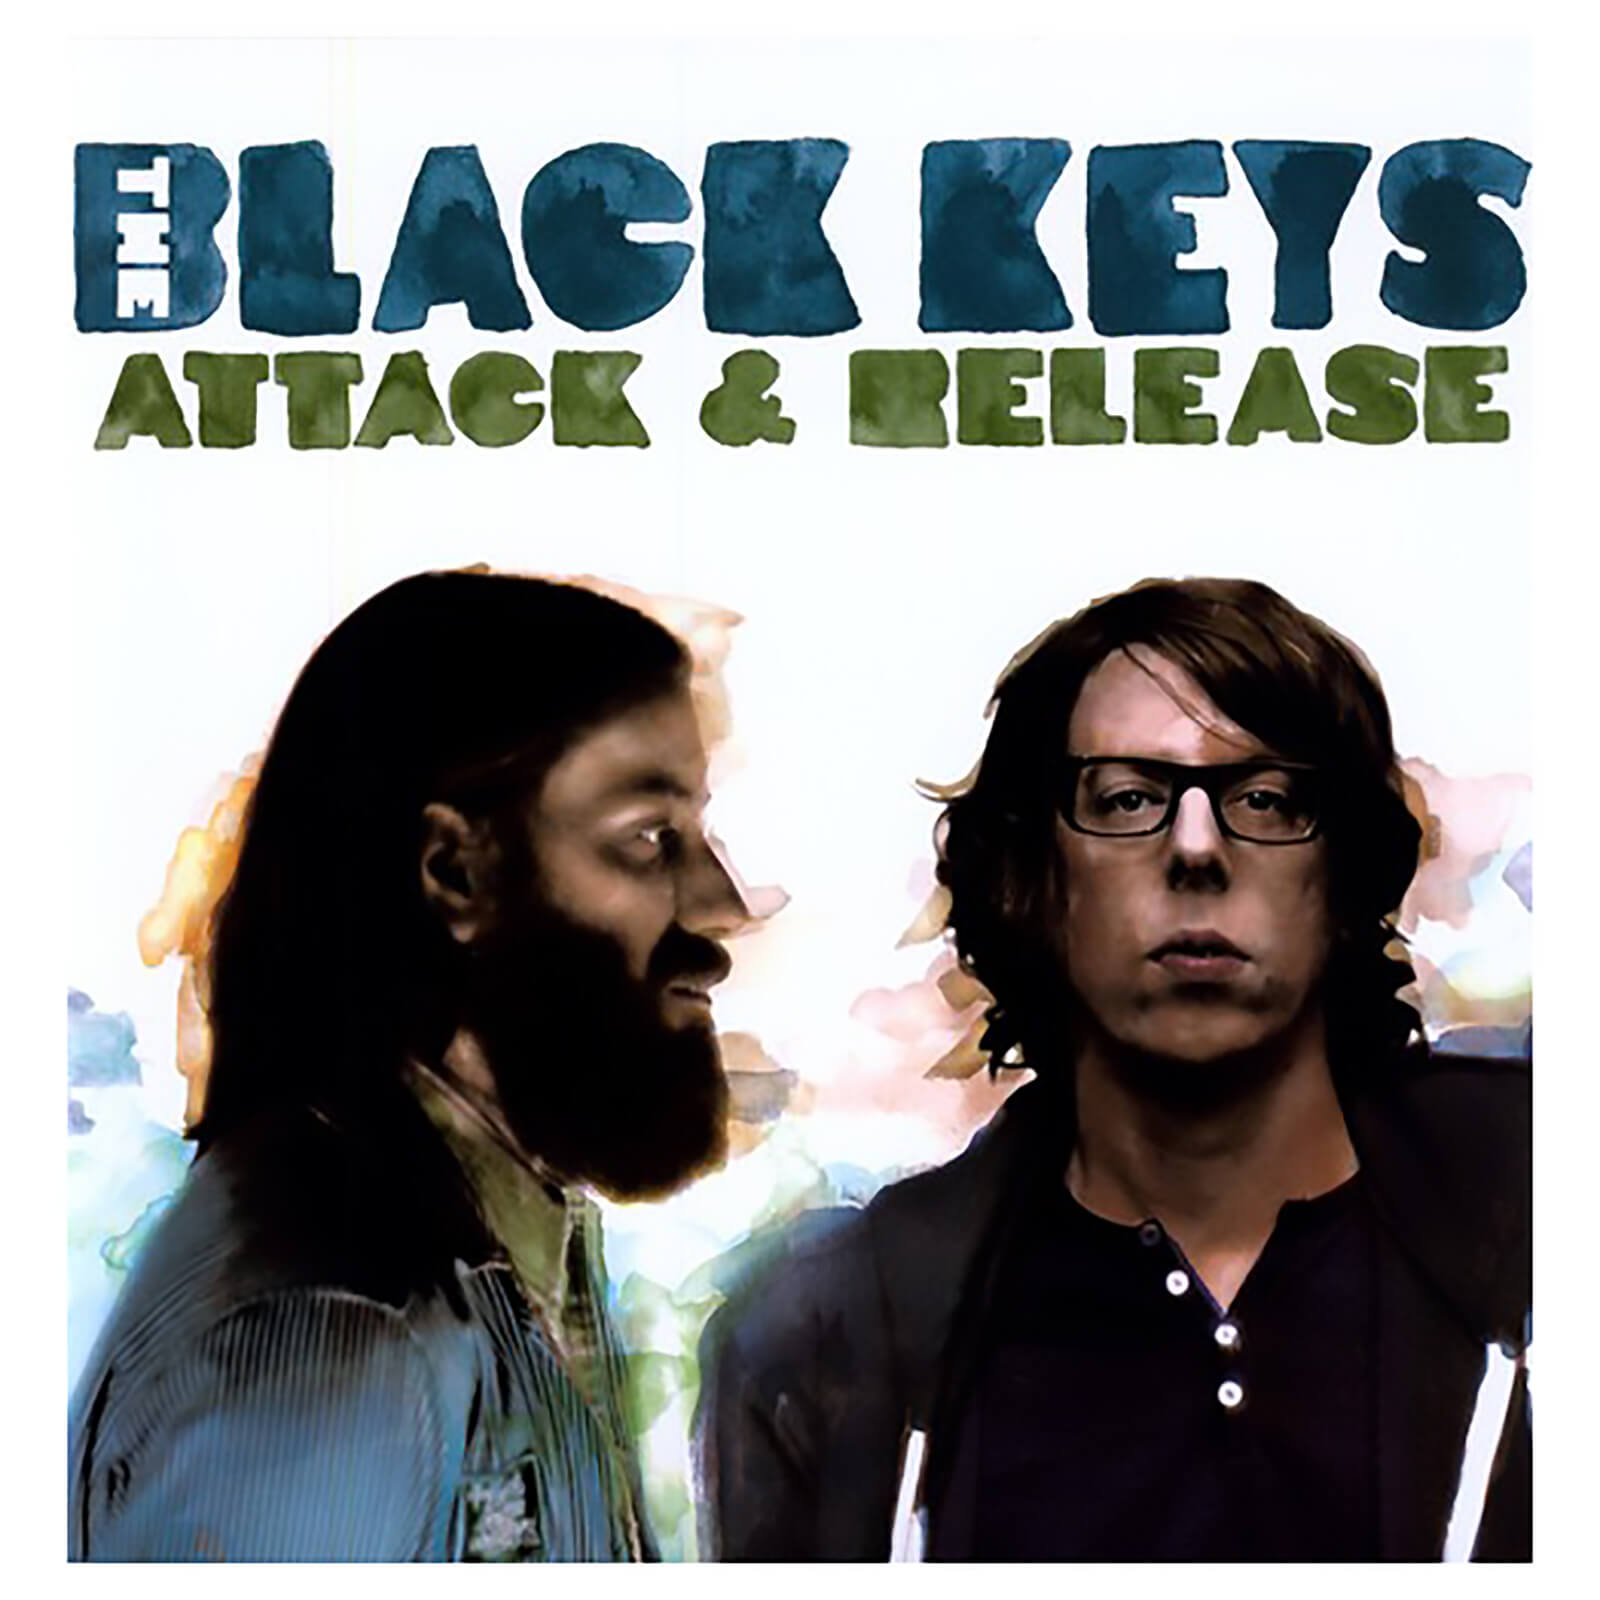 Black Keys - Attack & Release - Vinyl